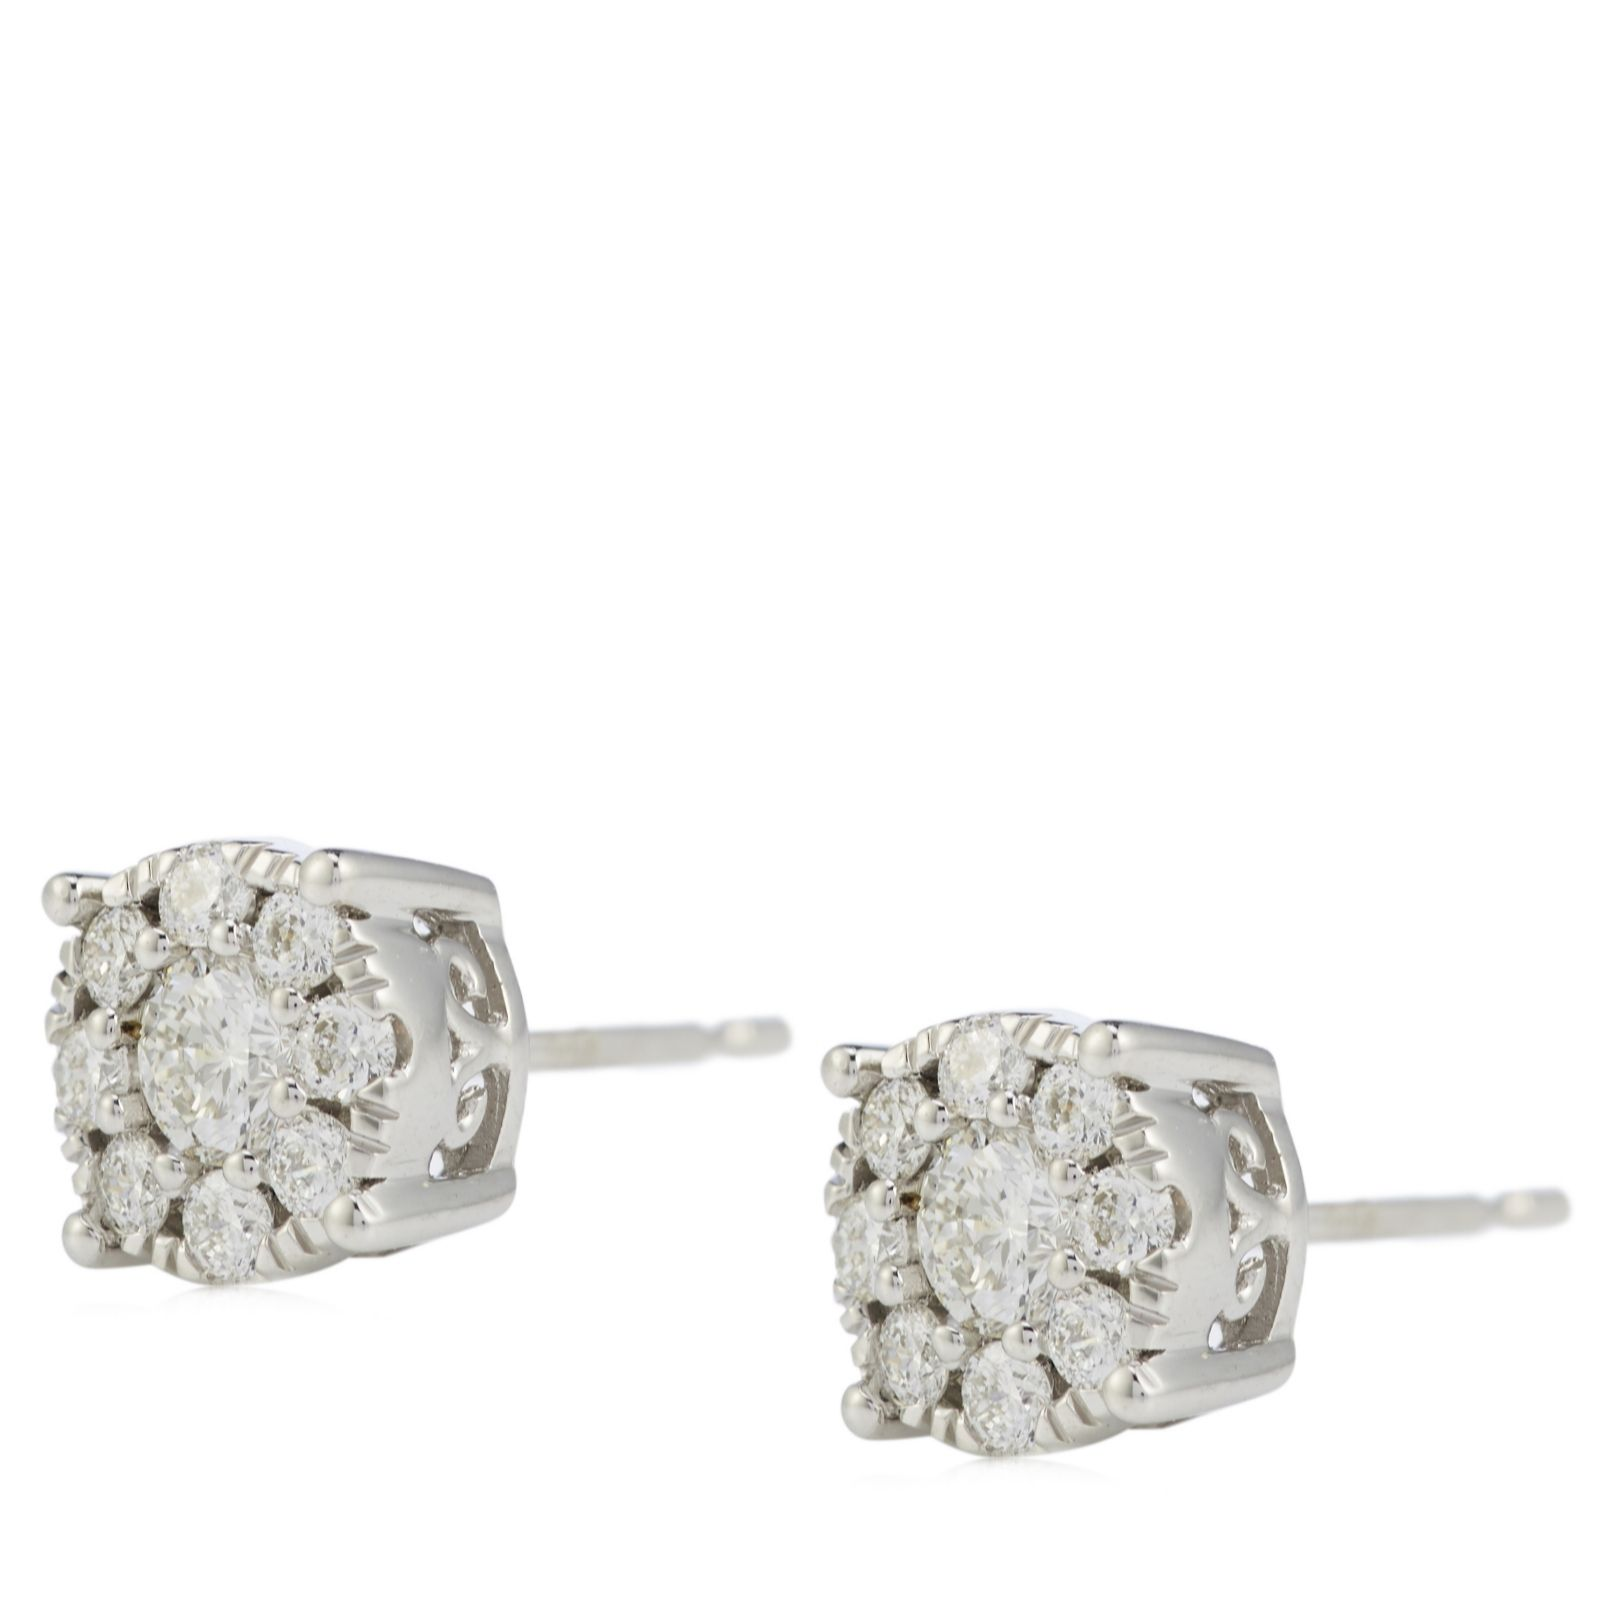 3a9985a5a33a6 Outlet 0.50ct Diamond 98 Facets Special Cut H SI2 Stud Earrings 9ct Gold -  QVC UK